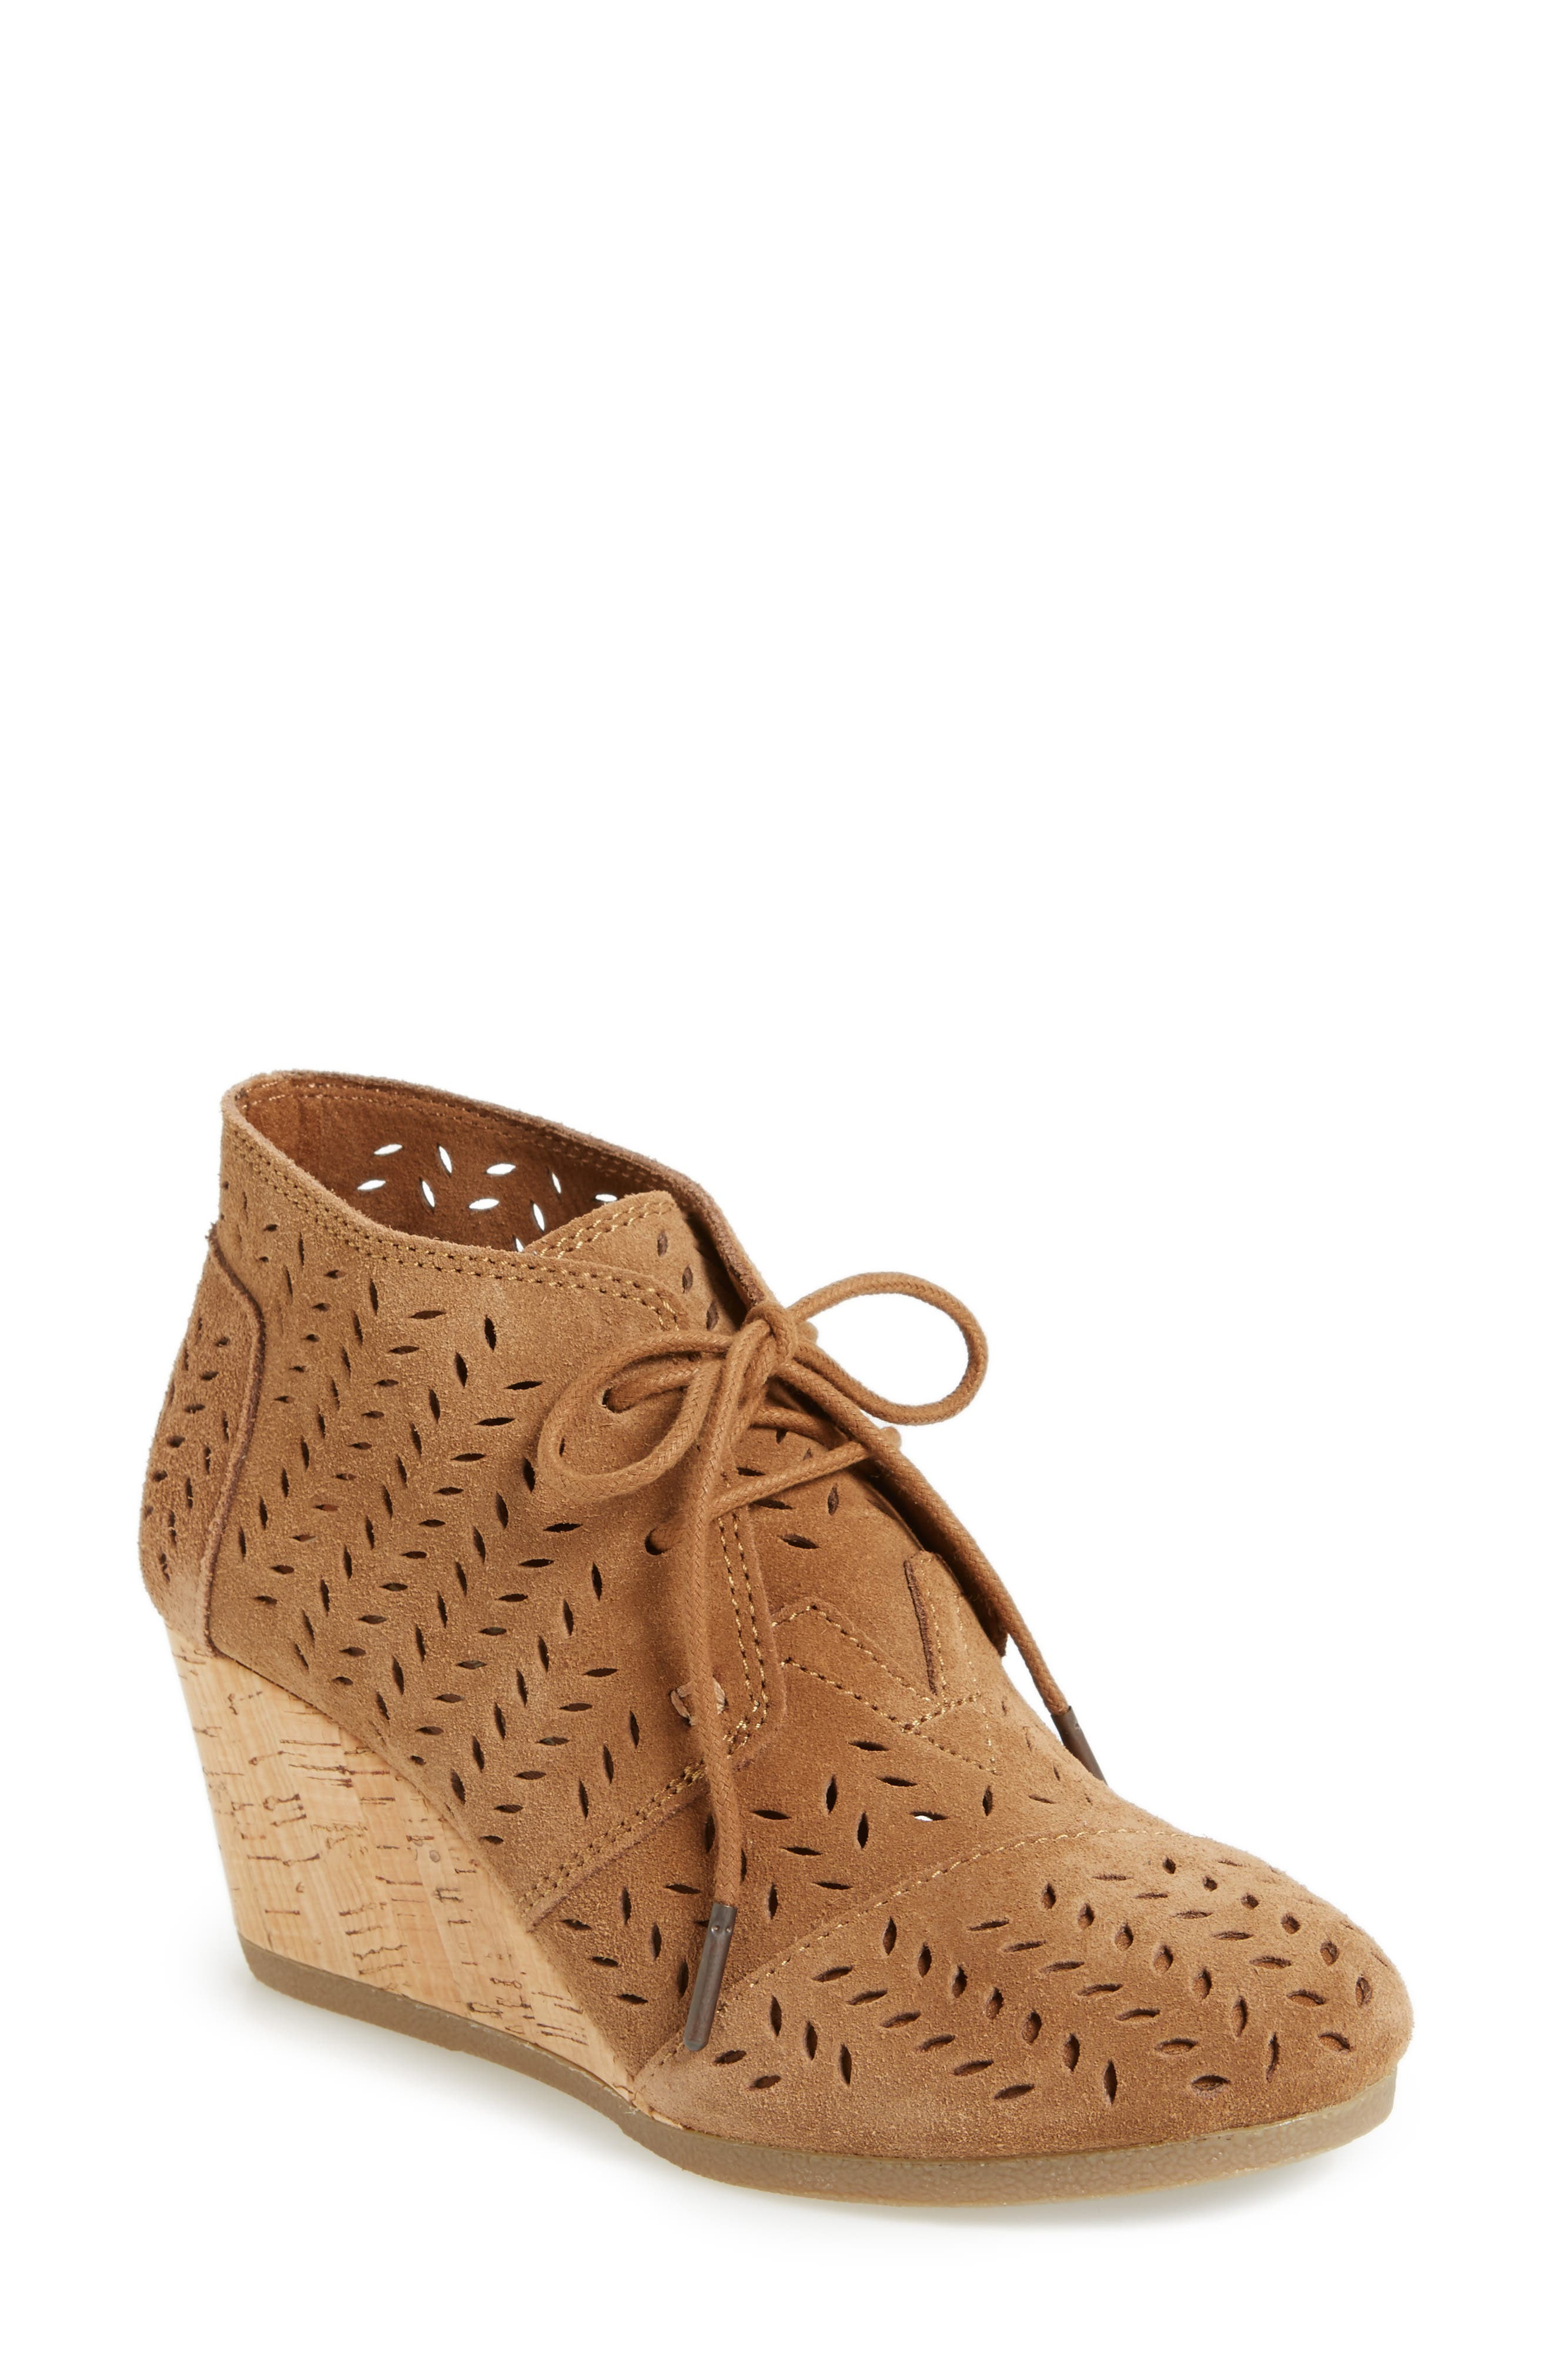 Alternate Image 1 Selected - TOMS Perforated Chukka Wedge Boot (Women)